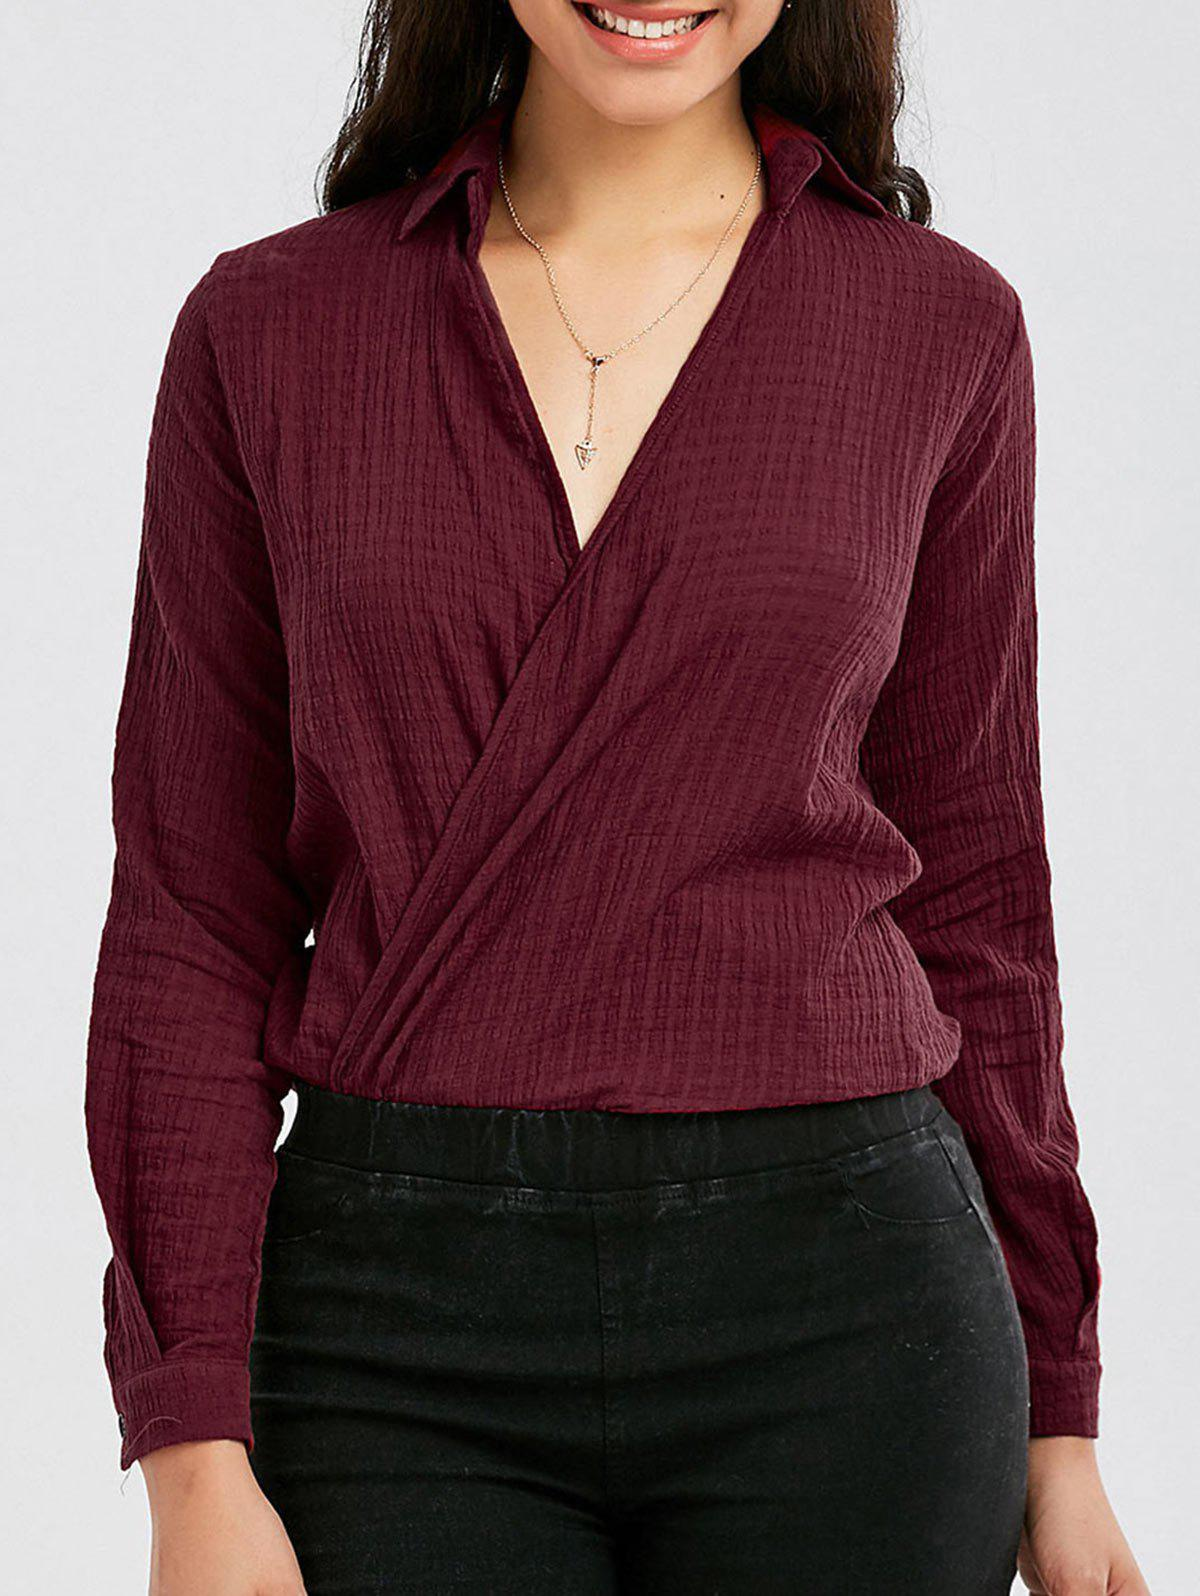 Long Sleeve Open Front Shirt, Wine red